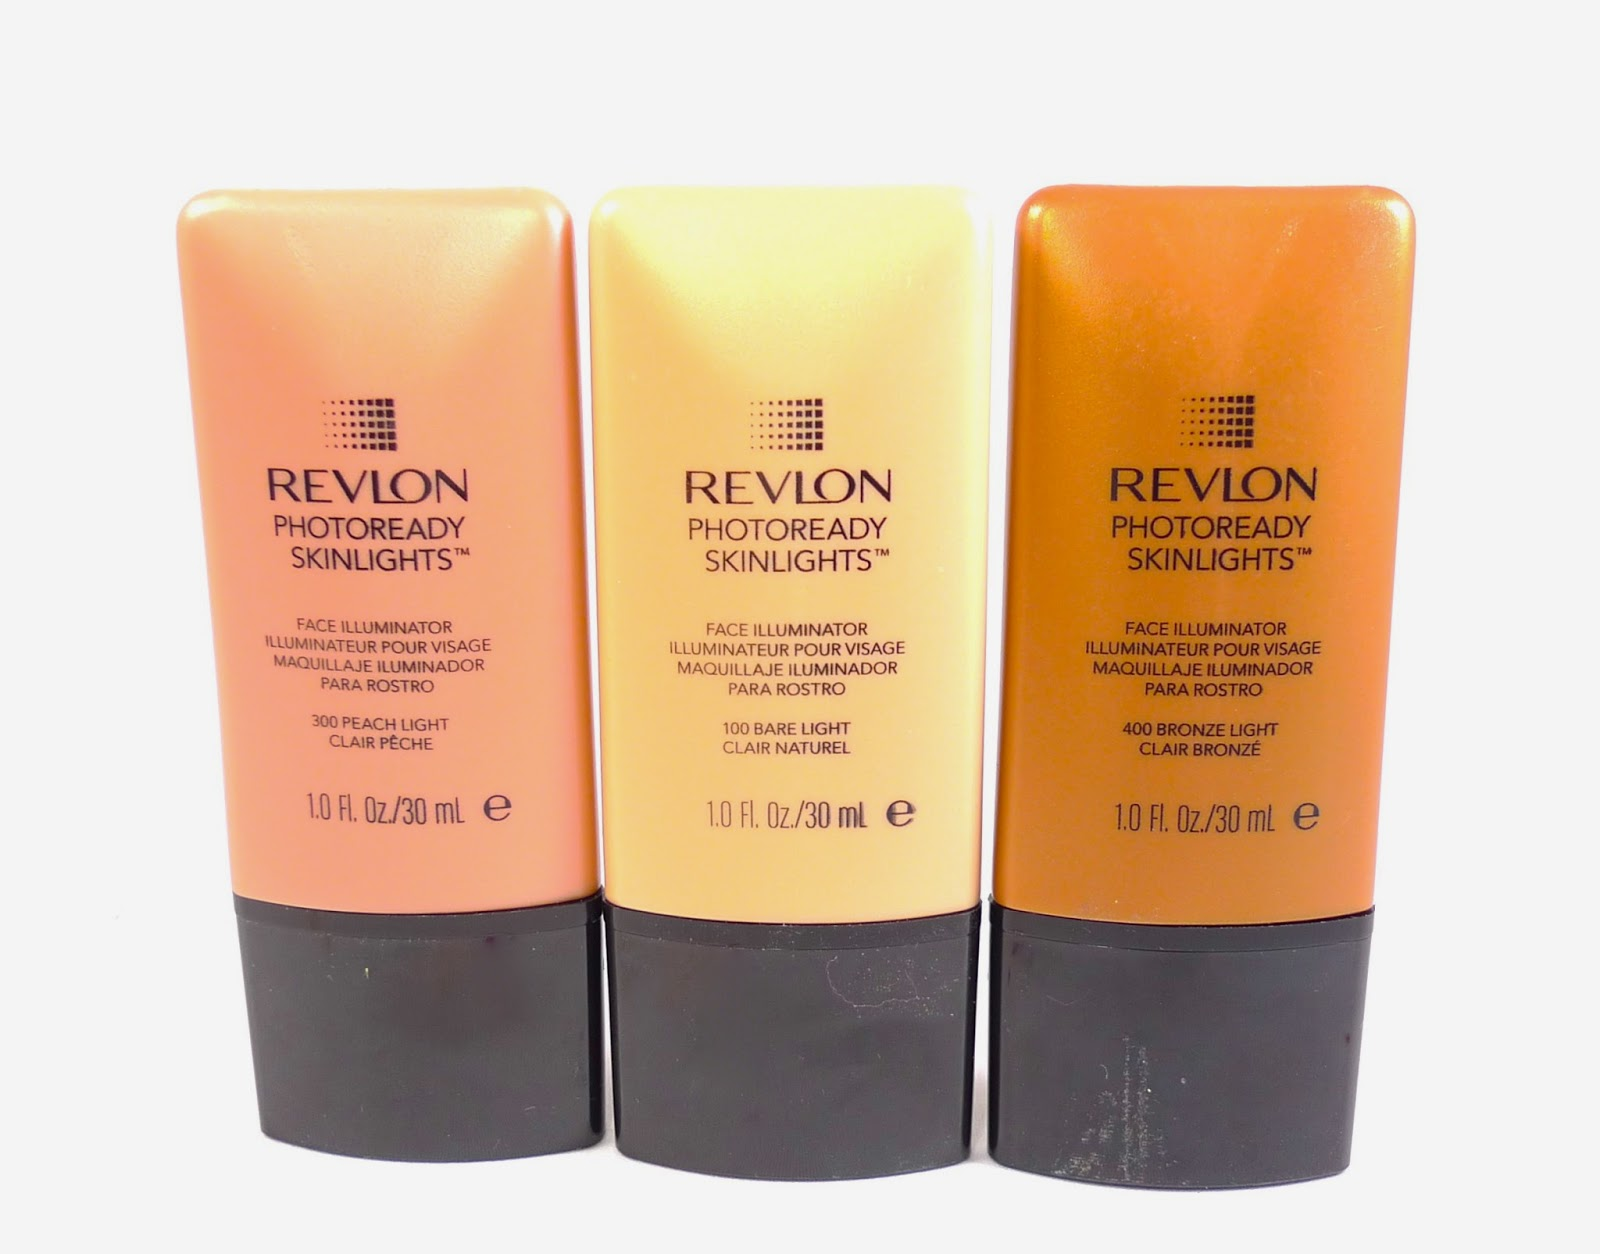 Revlon Photoready Skinlights Face Illuminator Review + Complete ...